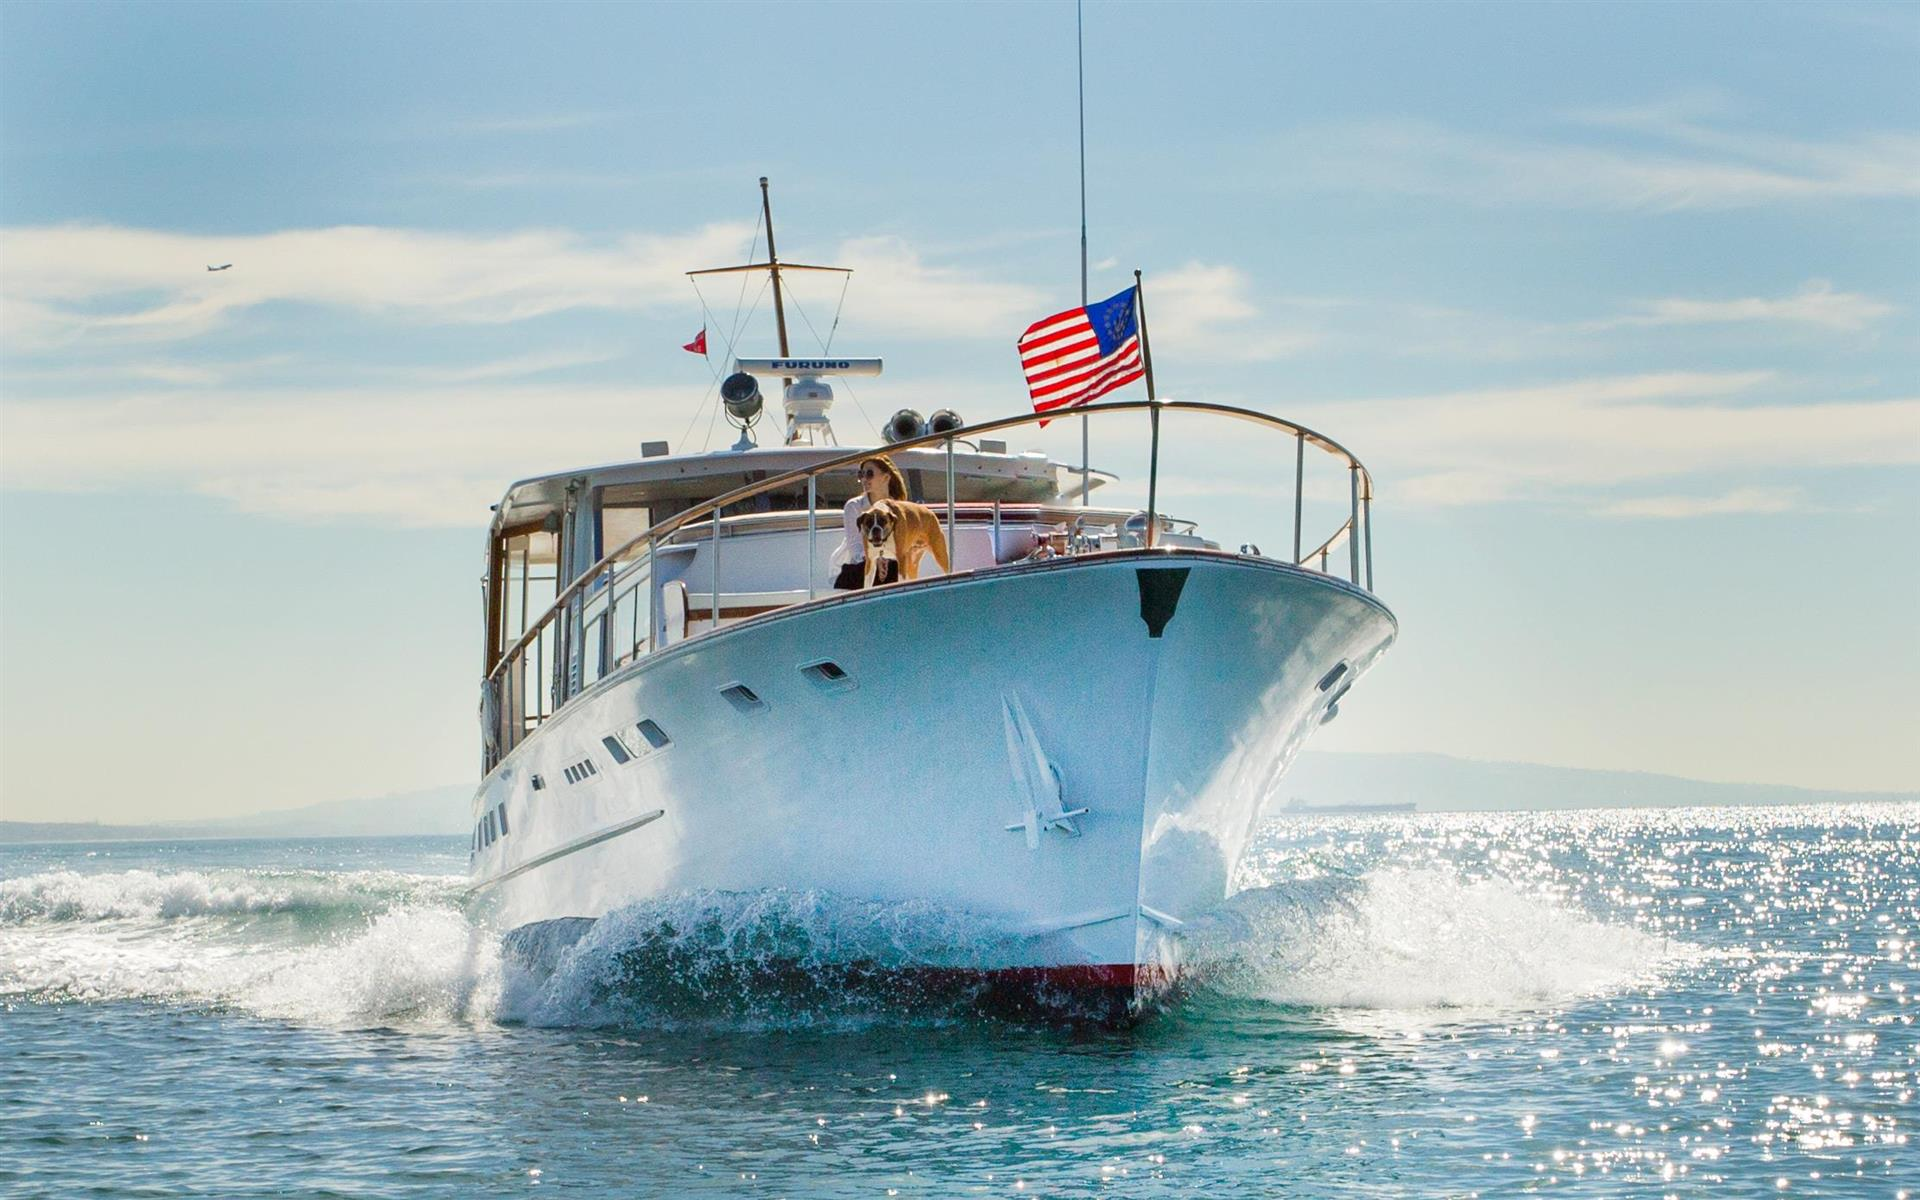 The Lone Ranger 2 - Classic 1960's yacht